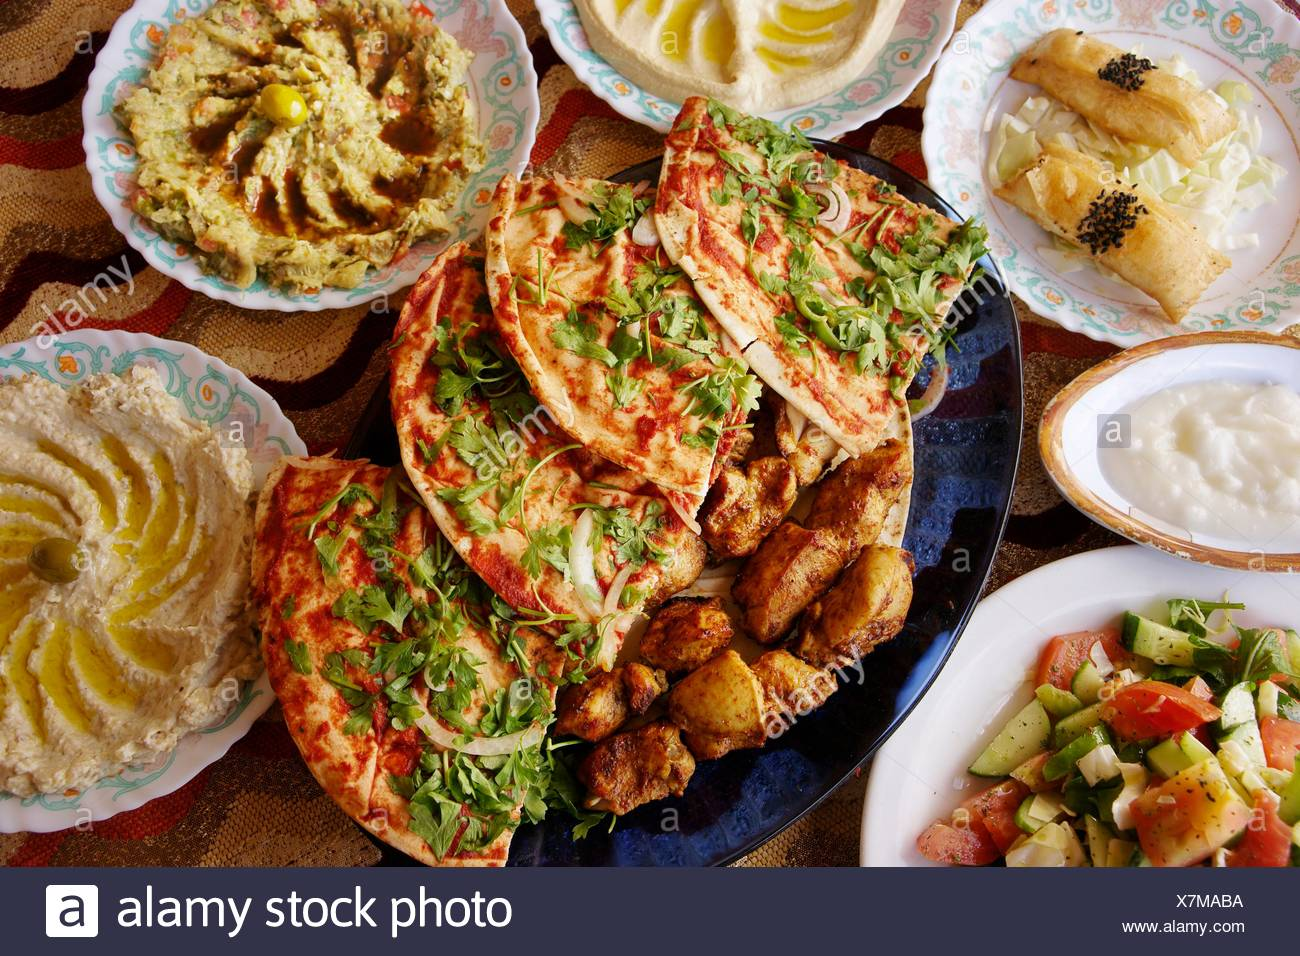 Food: different ´meze´ salads, ´hummus´ and more, with chiken ´kebab´ grill and bread, ´pizza´ style, Hama, Syria - Stock Image